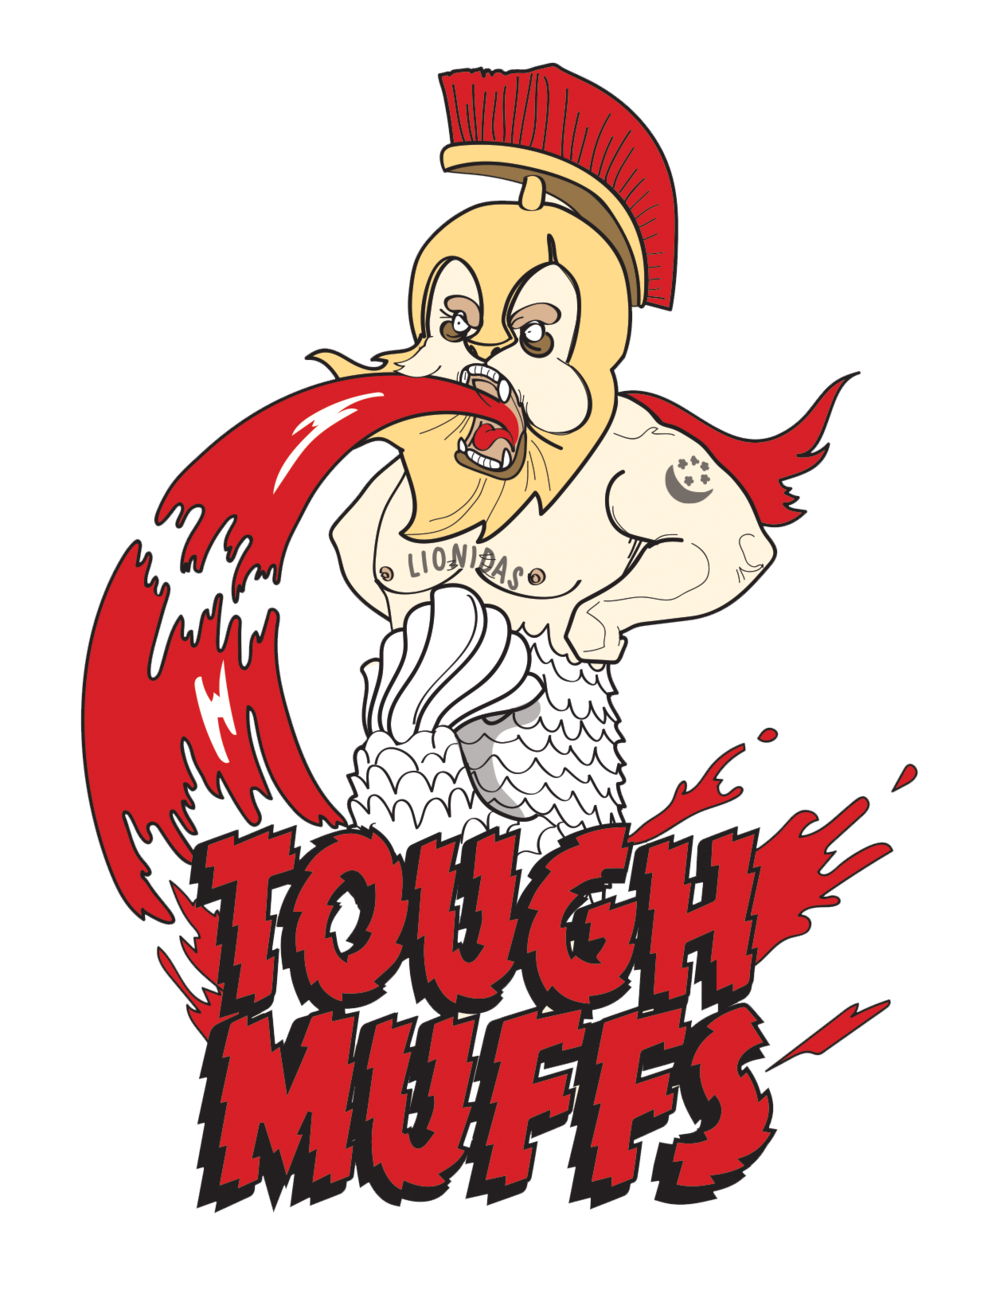 The Tough Muffs  My Friend's Spartan racing team. Don't interrogate thing too much or it'll puke blood on you too.